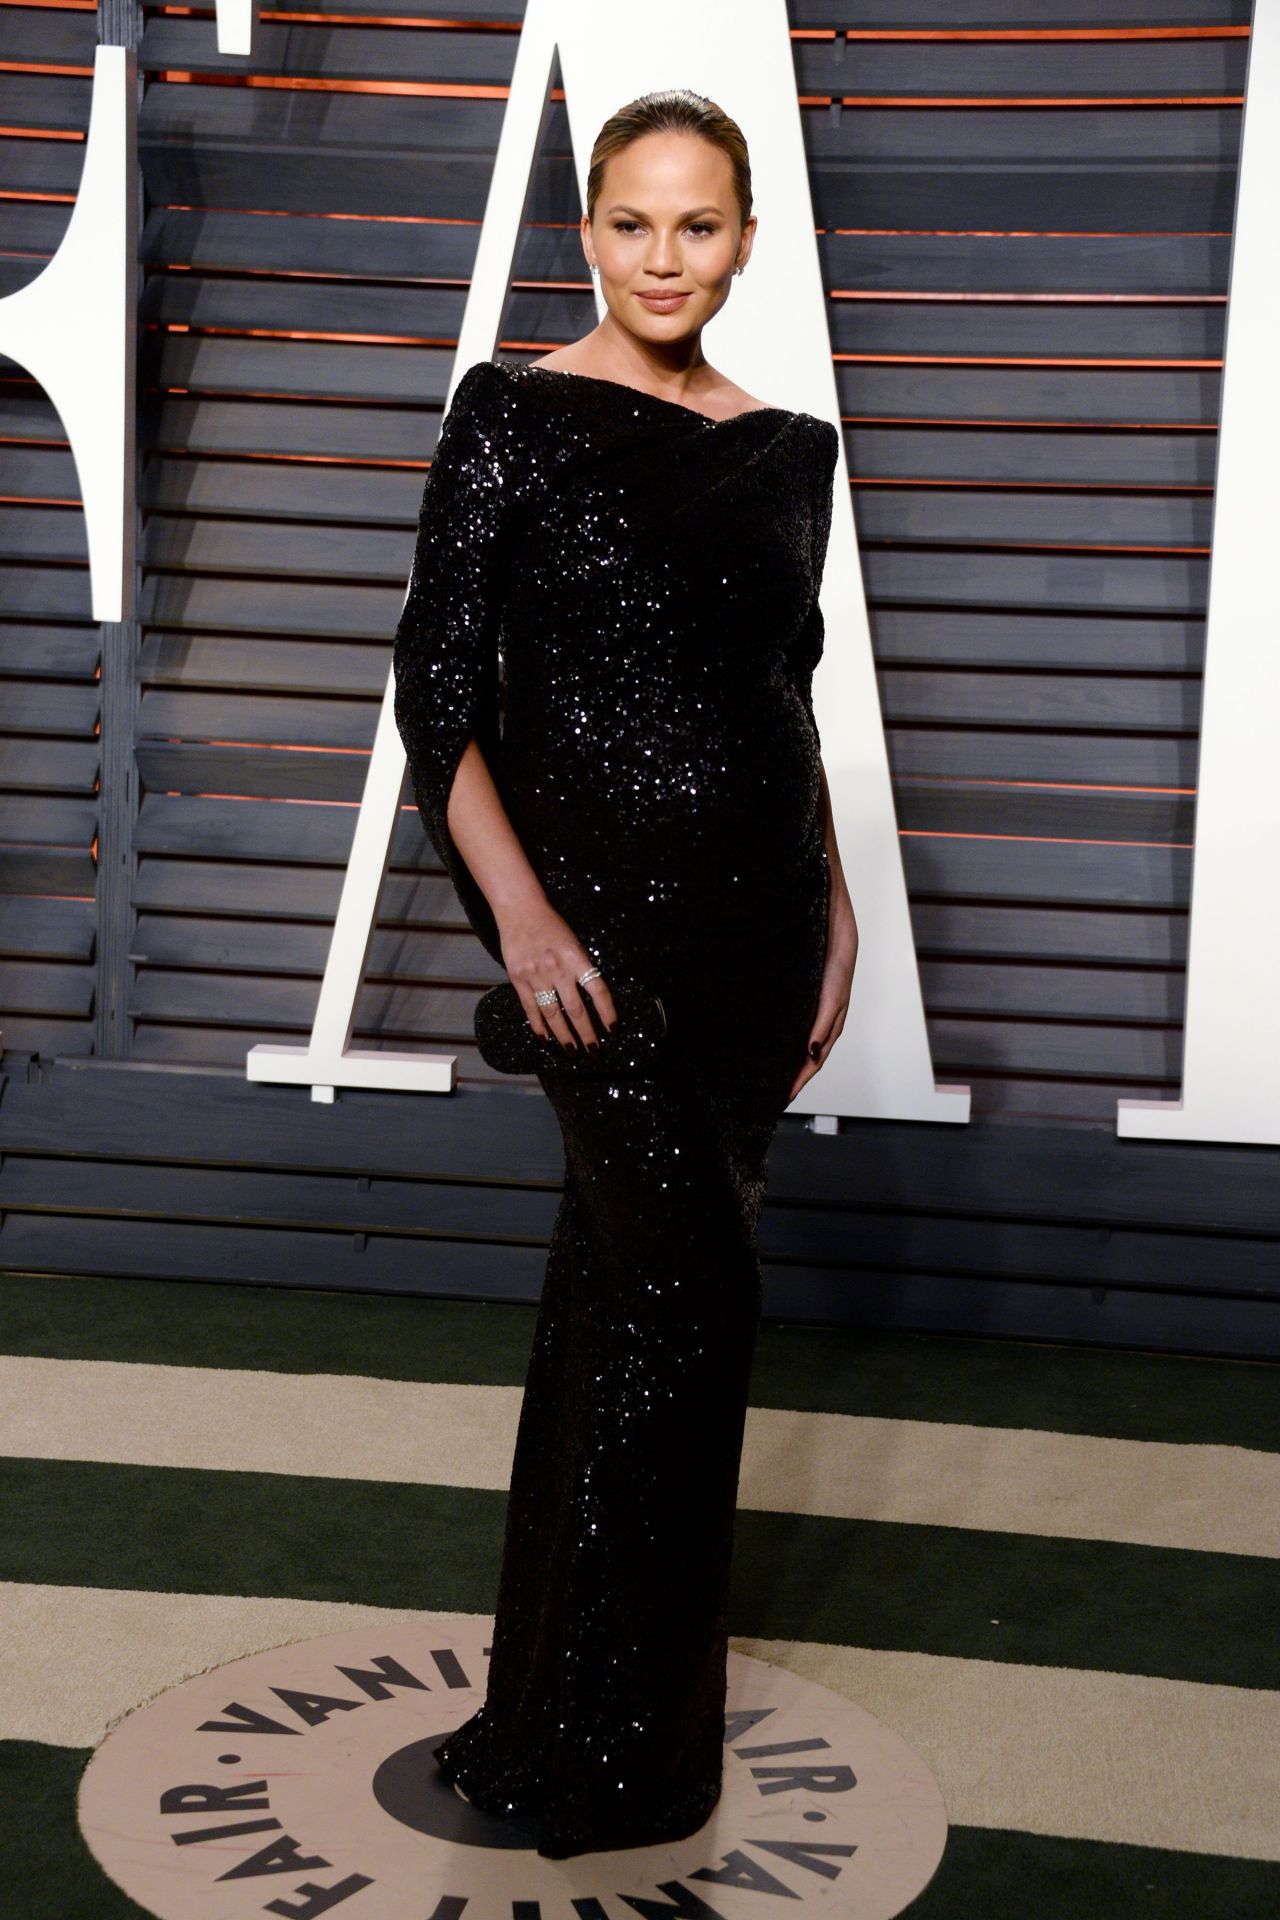 chrissy-teigen-2016-vanity-fair-oscar-party-in-beverly-hills-ca-1